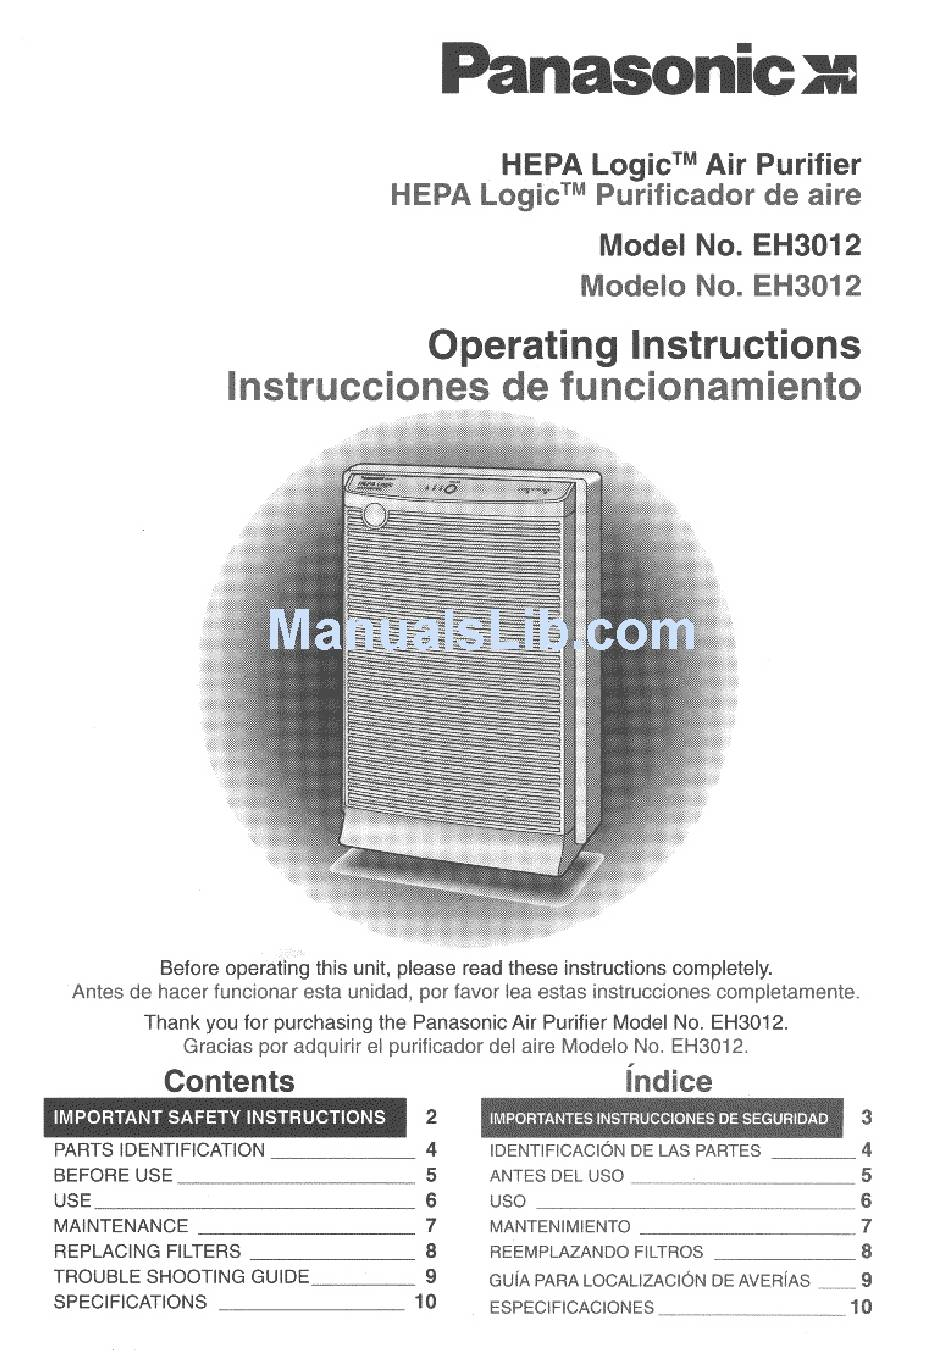 PANASONIC EH3012 OPERATING INSTRUCTIONS MANUAL Pdf